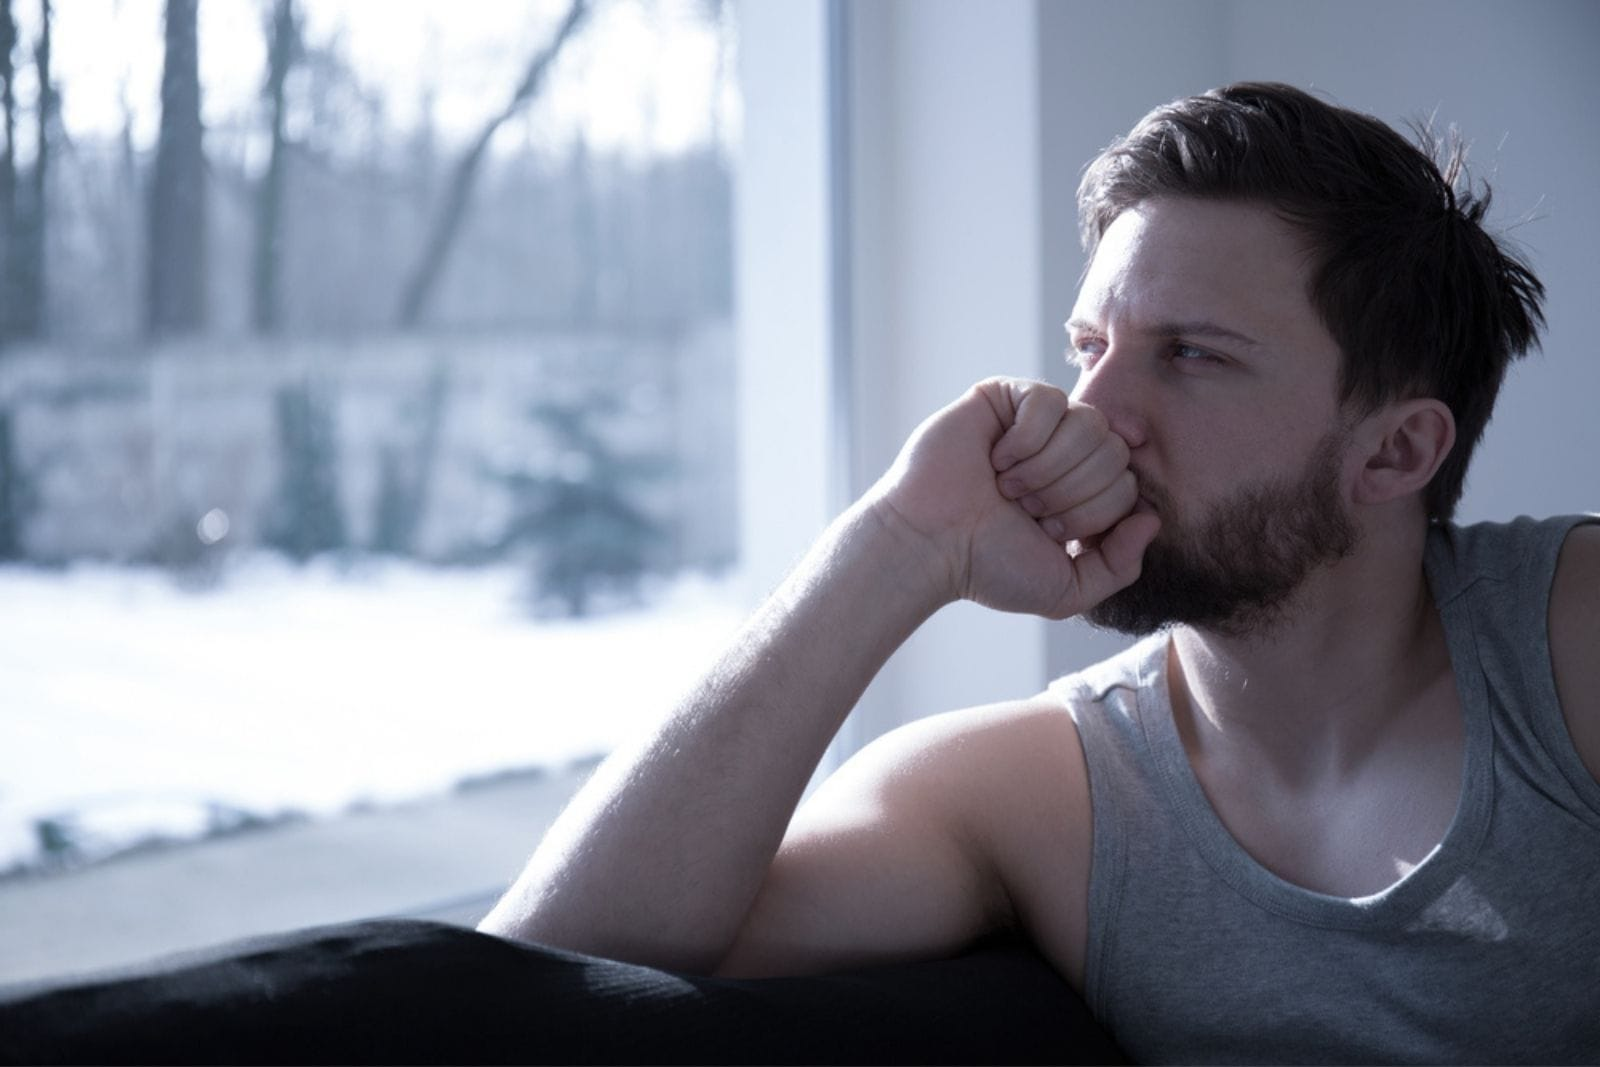 a man pensively looks out the window